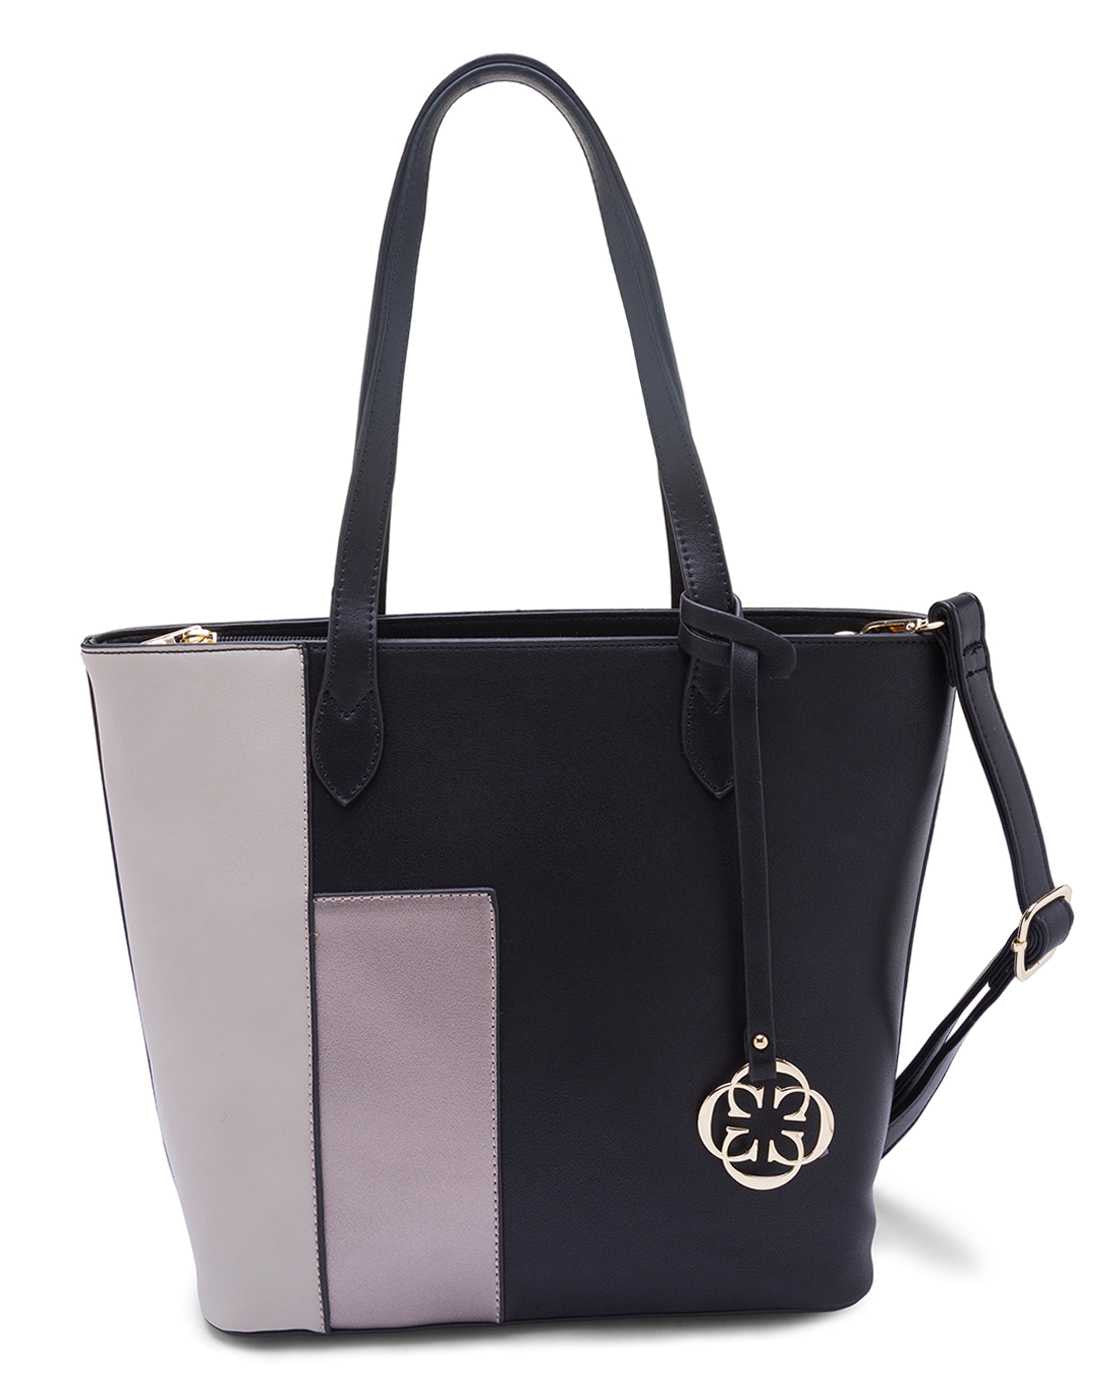 Black and Beige Color Blocking Handbag